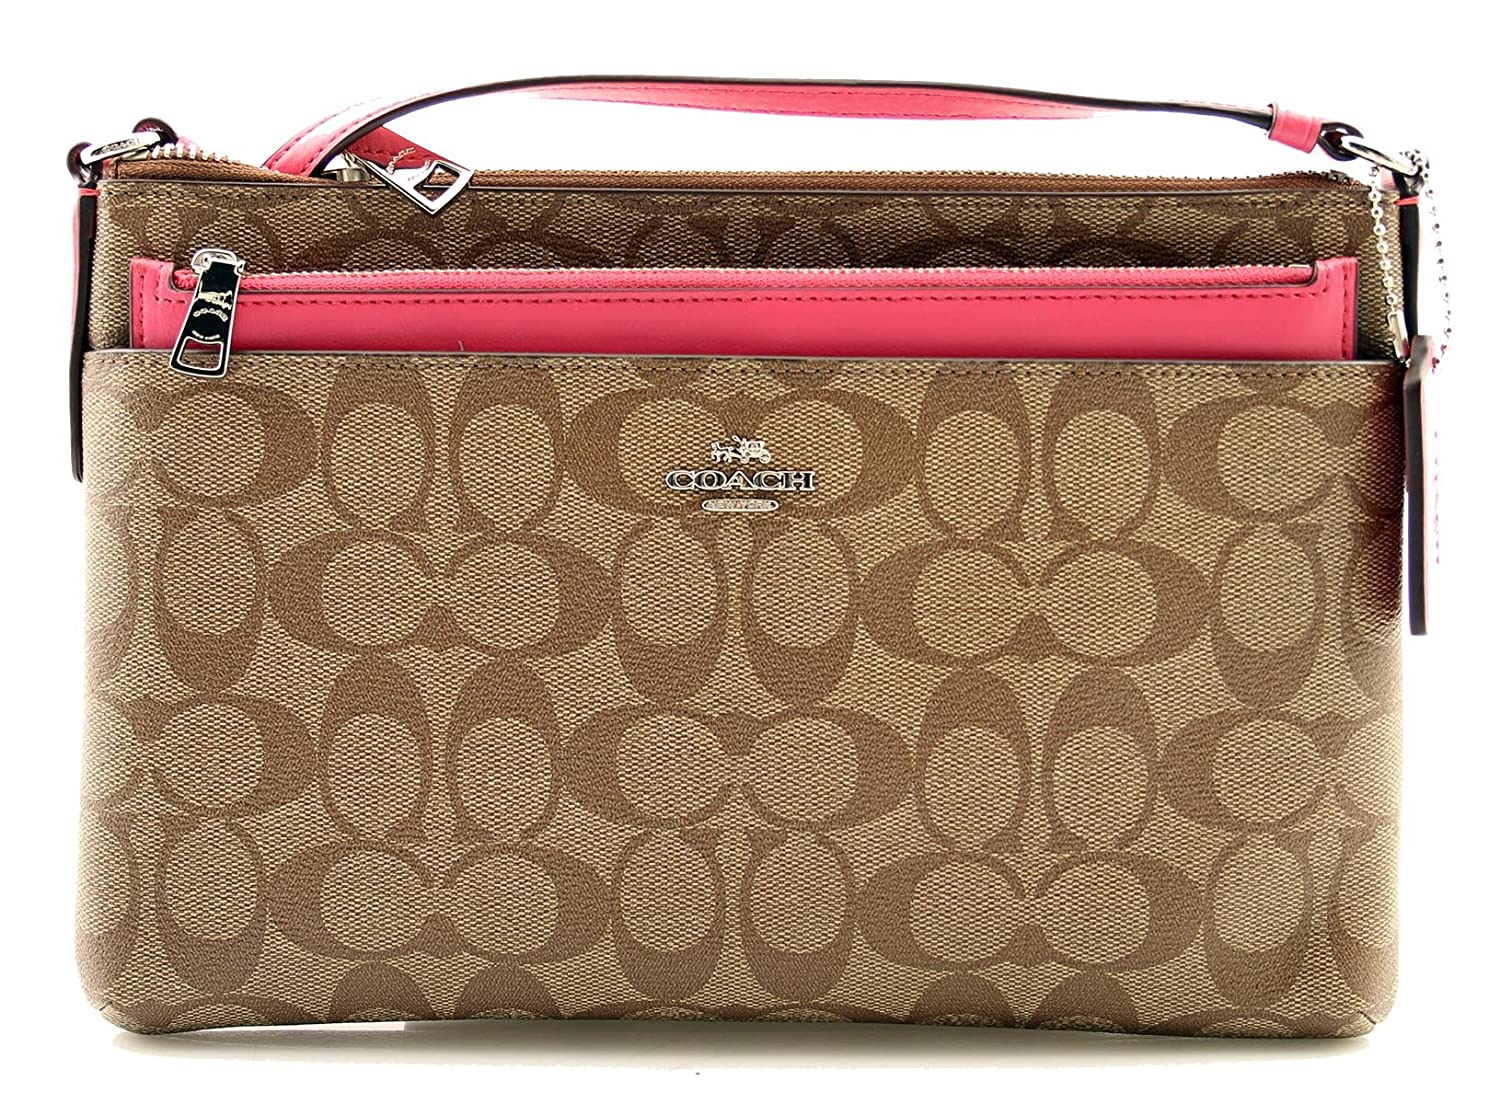 5c0fded392f6 COACH EAST WEST CROSSBODY WITH POP-UP POUCH (F58316)  Handbags  Amazon.com